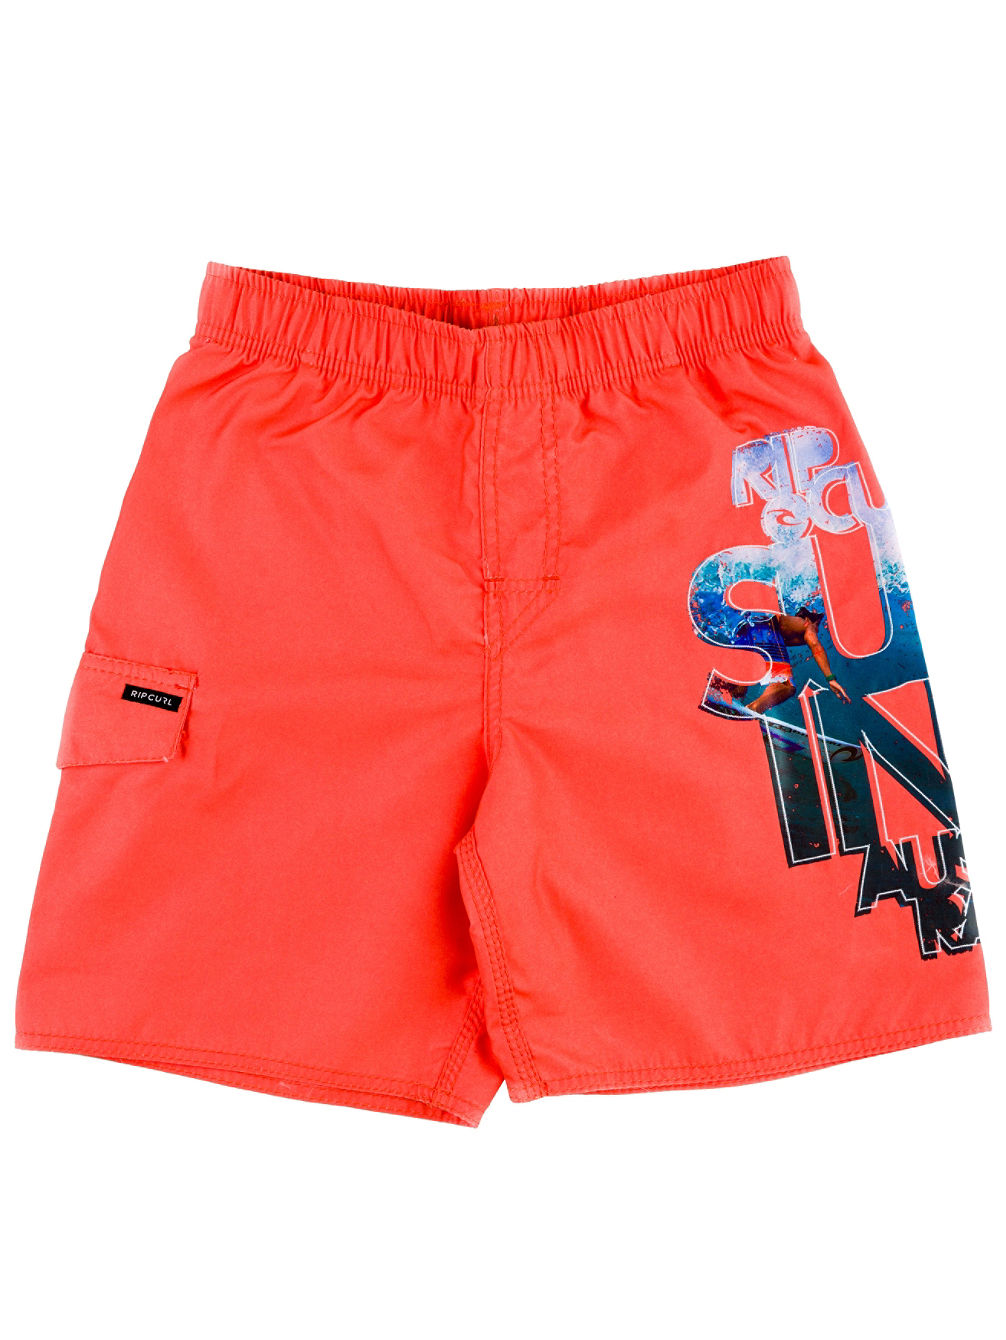 rip-curl-action-easy-fit-17-boardshorts-boys